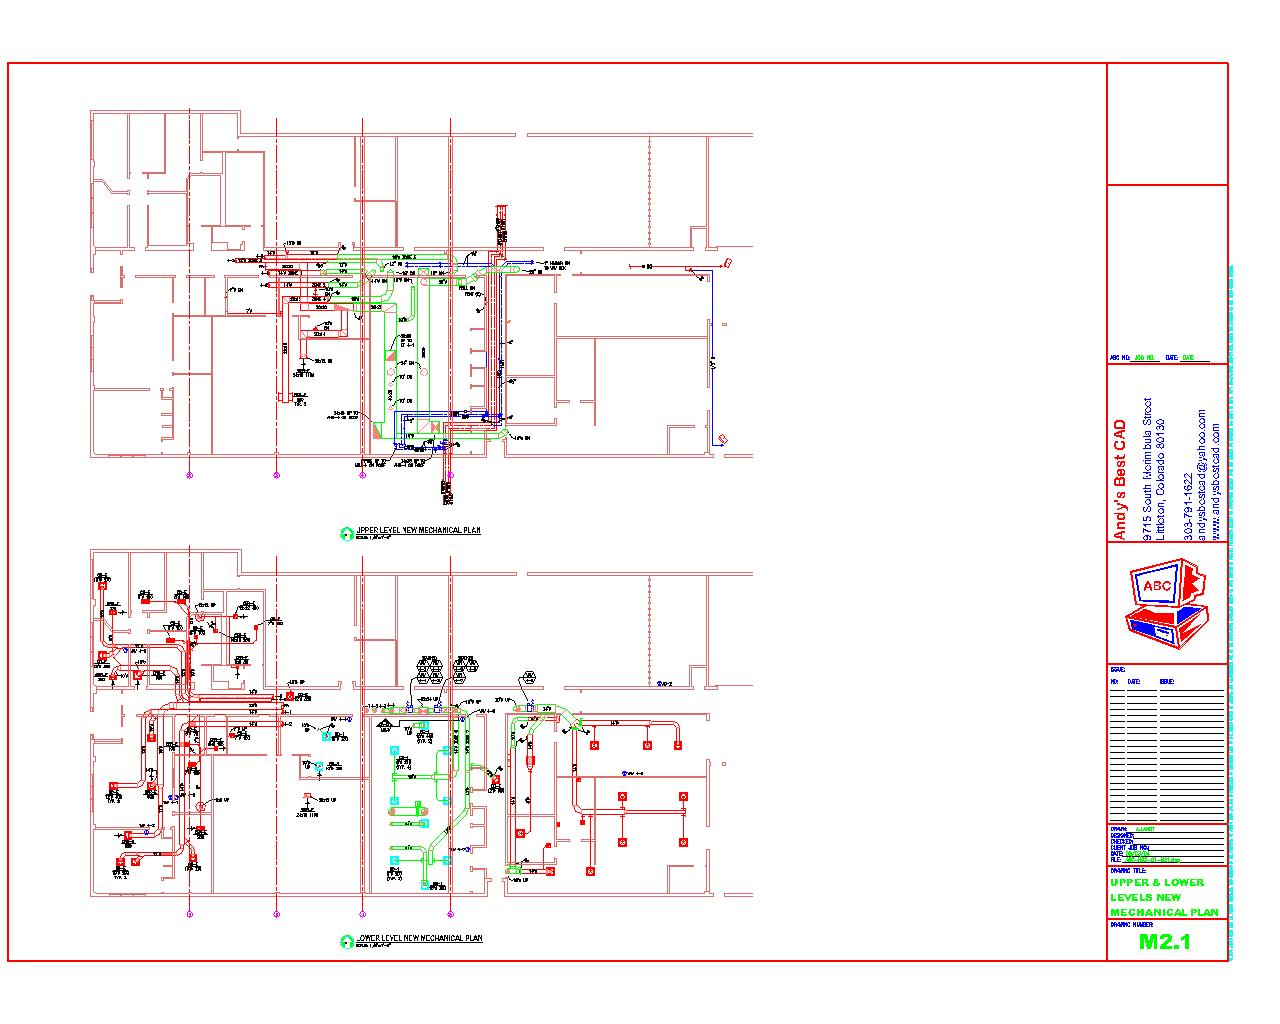 autocad hvac drawings pictures sy 9573  hvac drawing sample wiring diagram  sy 9573  hvac drawing sample wiring diagram